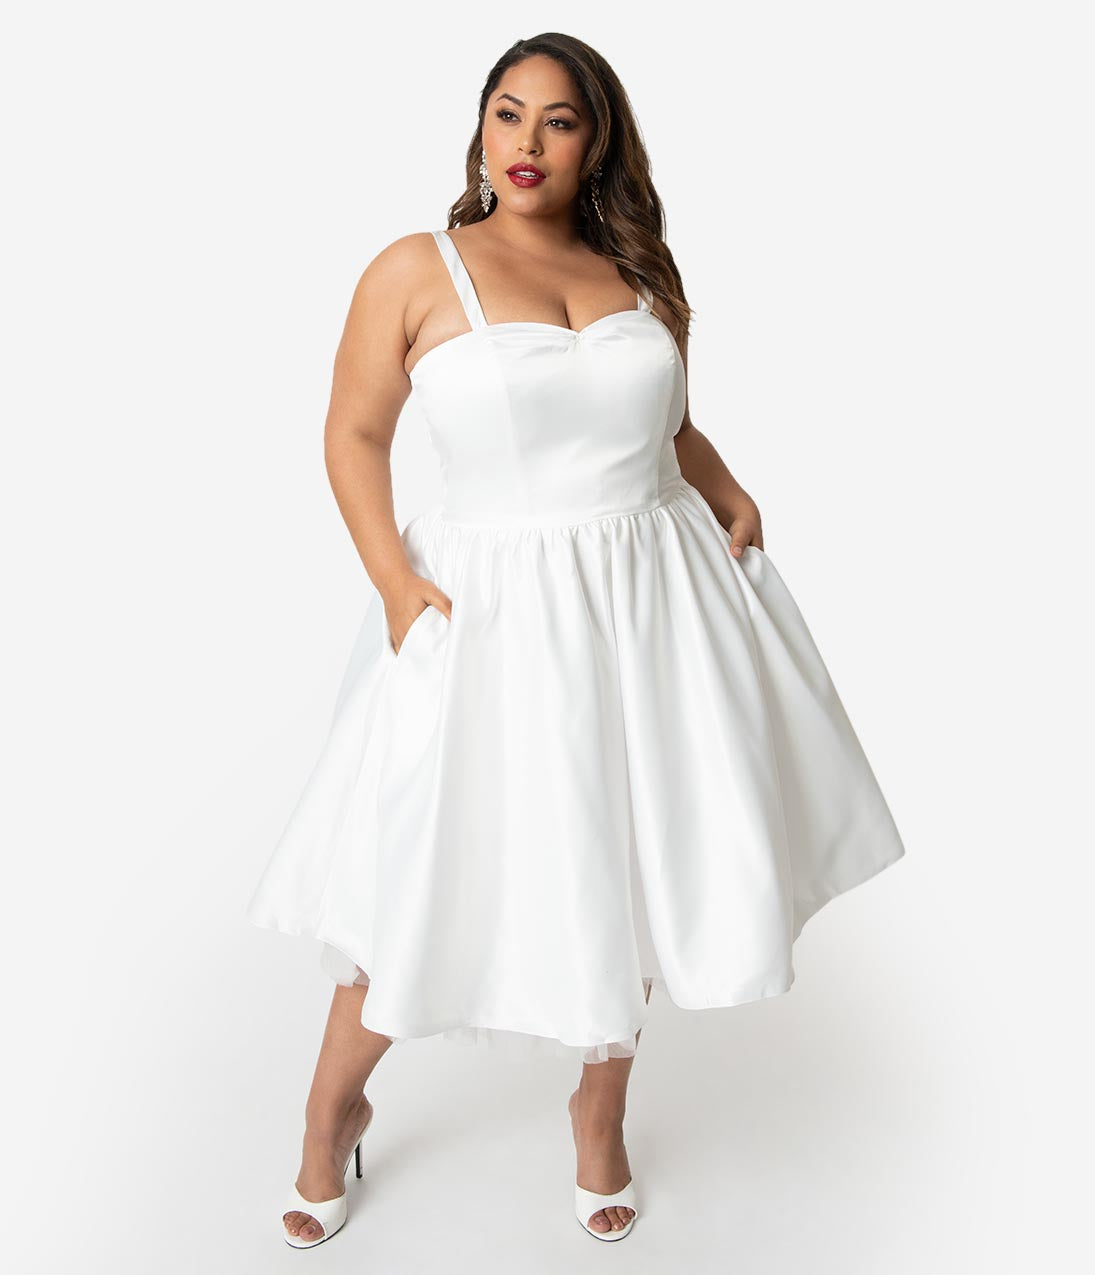 Vintage Inspired Wedding Dresses: 1920s-1960s Unique Vintage X Dolly Couture Plus Size White Satin Tea Length Brooklyn Bridal Dress $190.00 AT vintagedancer.com